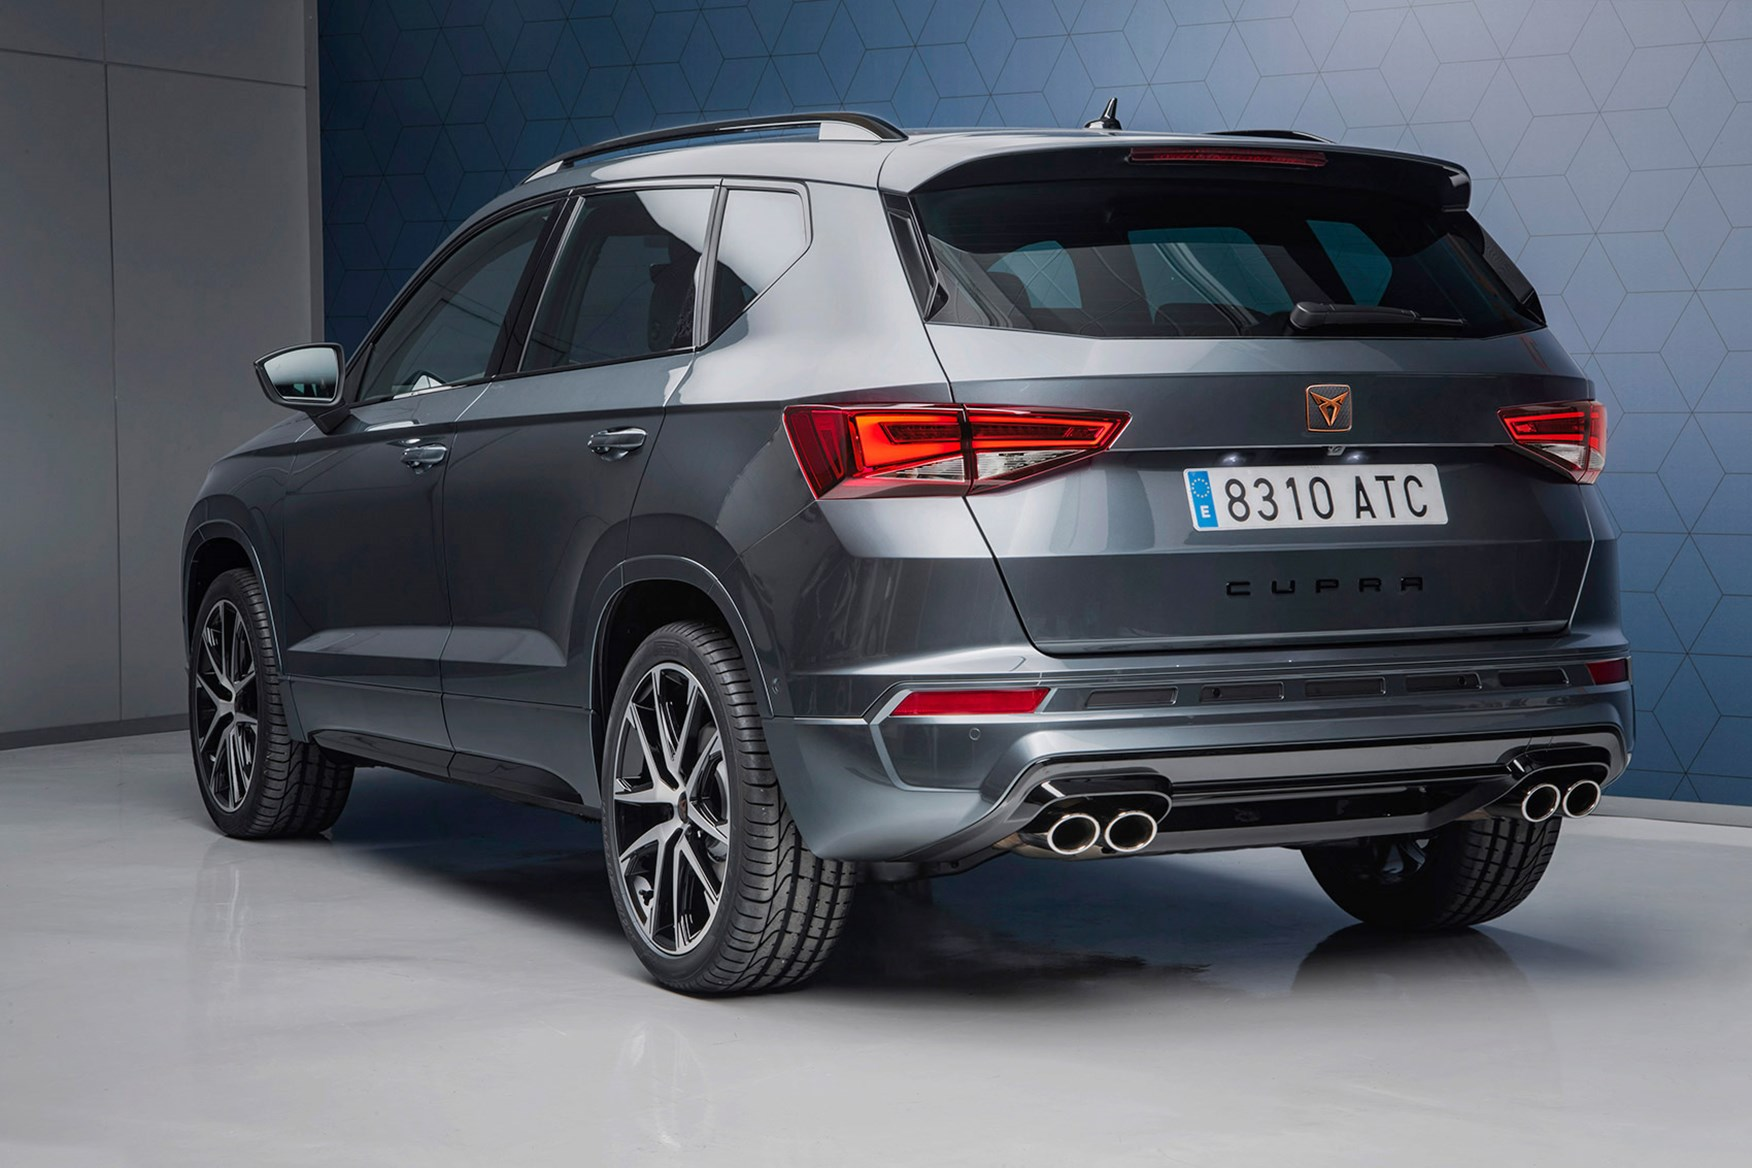 Low Profile Car Seat >> Cupra Ateca SUV: news, photos, prices, specs, on sale date ...